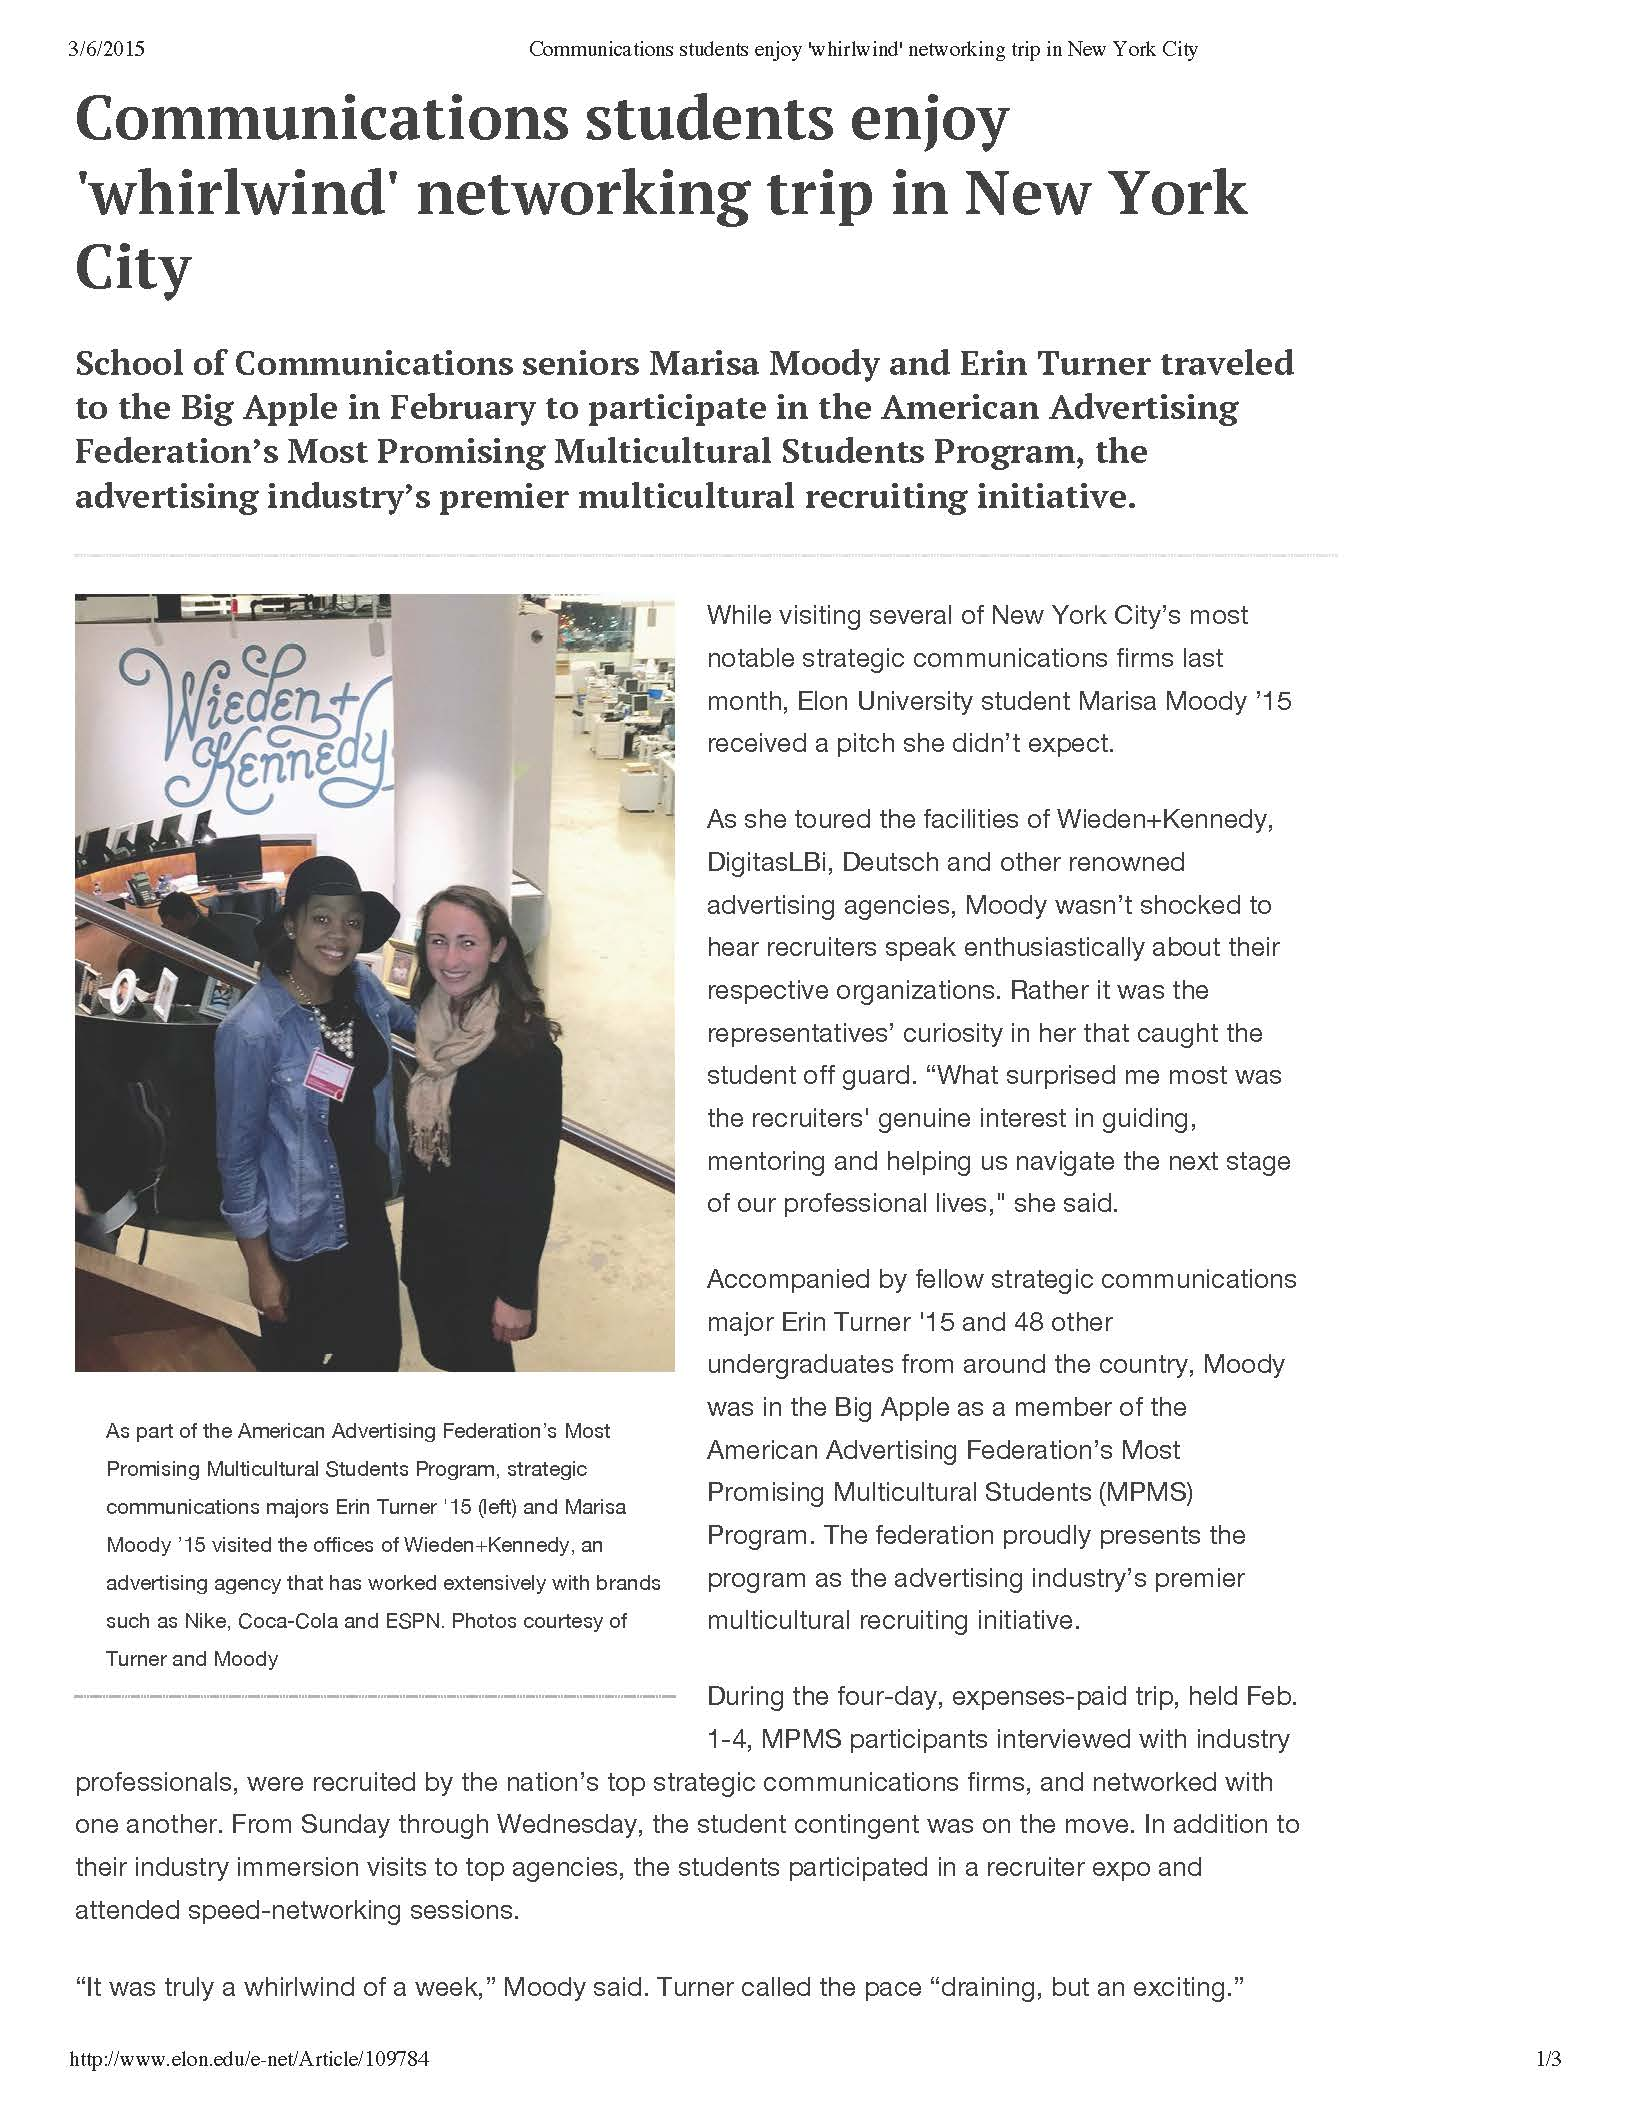 Communications students enjoy 'whirlwind' networking trip in New York City_Page_1.jpg